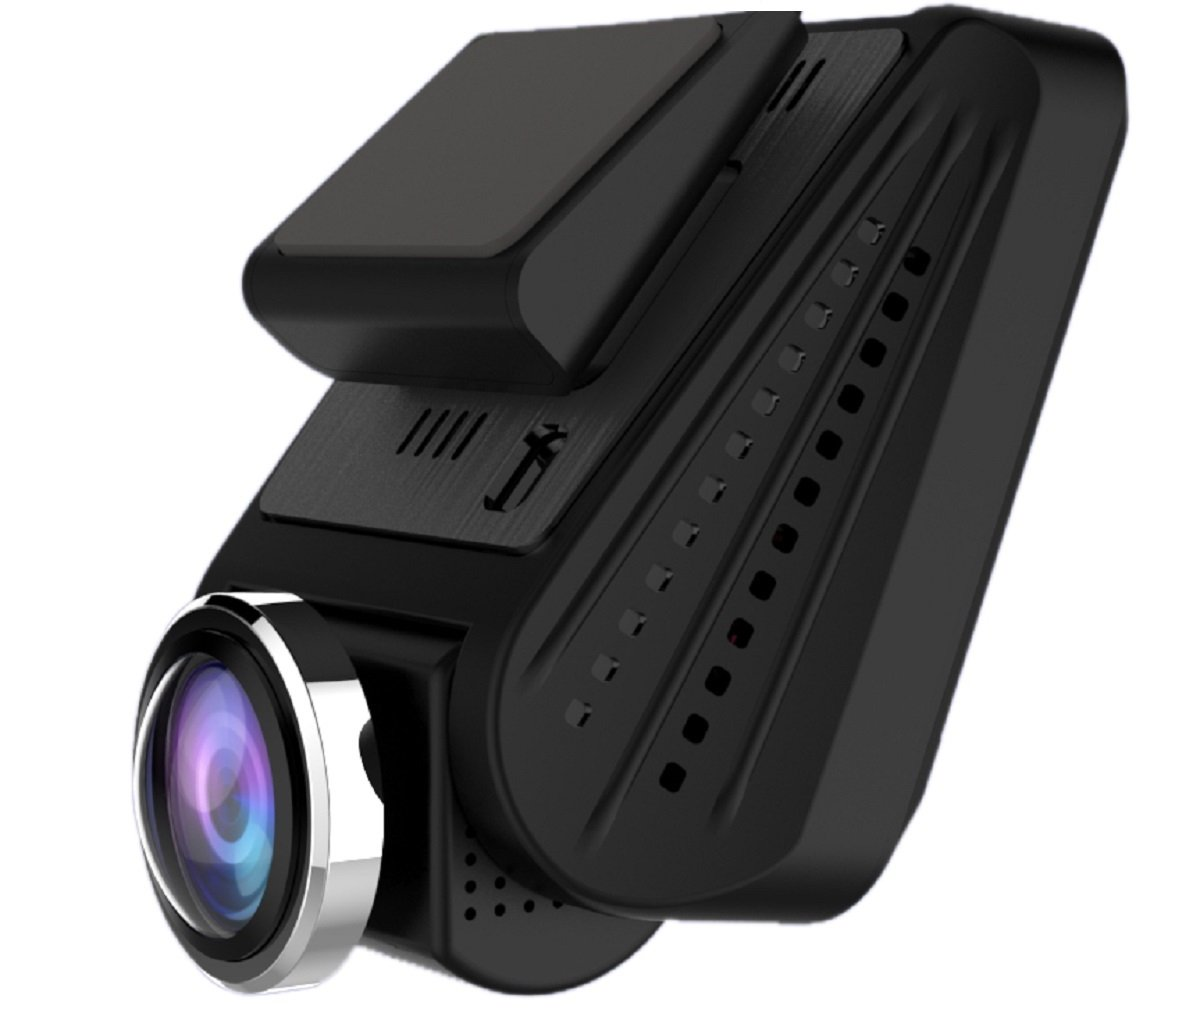 Powpro Pcam PP-A33 FHD 1080P WIFI 2.5 inch 360° Panoramic Car Dash Cam 220 Degree Wide Angle LED Infrated Night Vision Dashboard Camera Recorder with G-Sensor